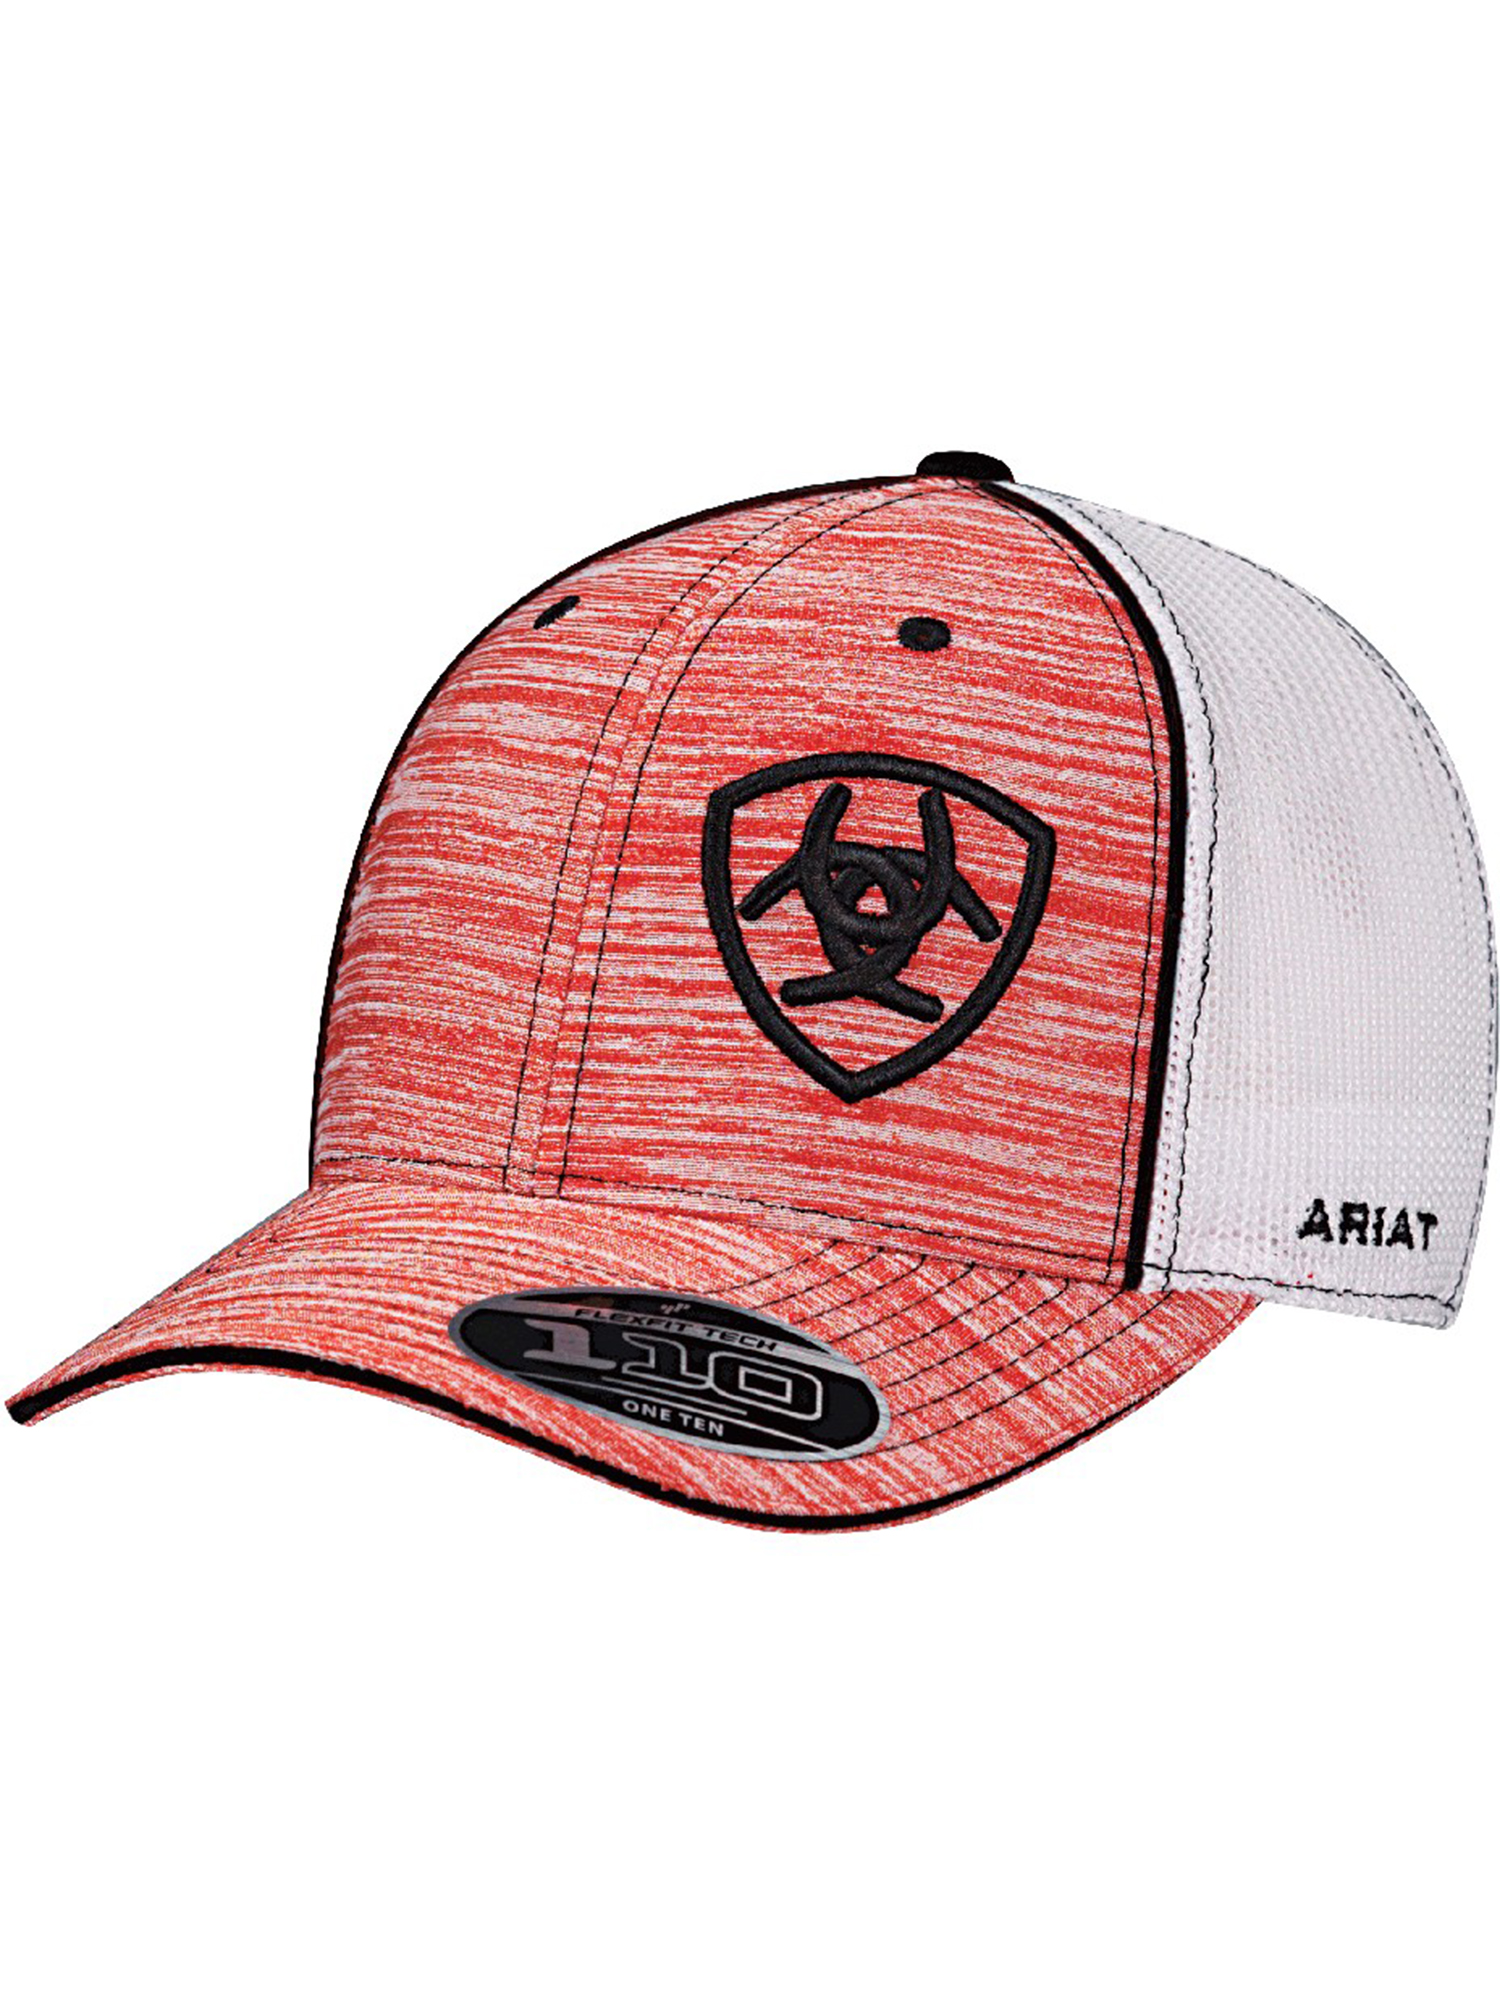 3d476aae0 promo code for ariat youth logo offset cap 37d8f cde9b